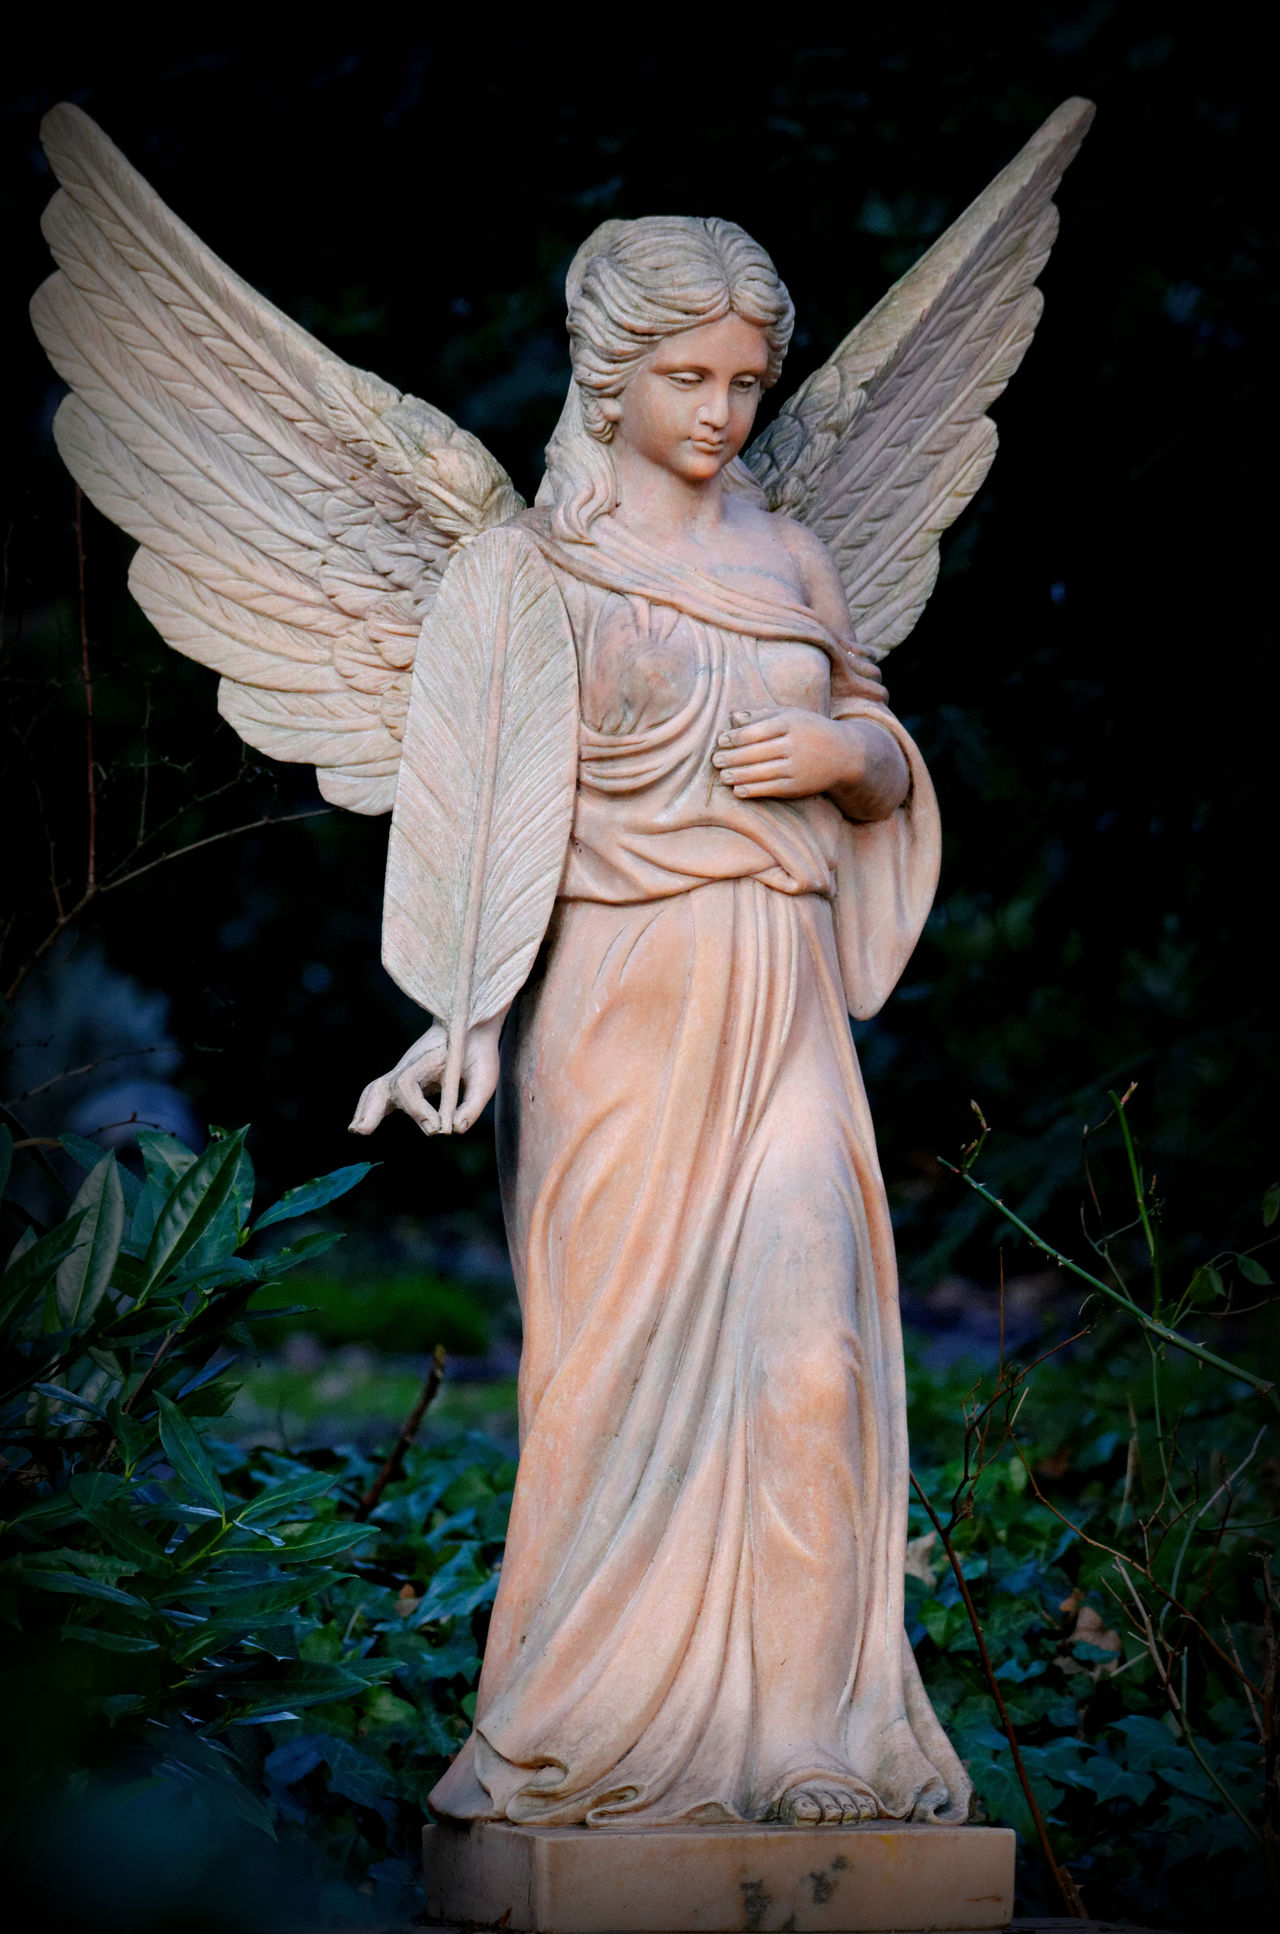 Angel Graveyard Graveyard Beauty Melaten One Woman Only Outdoors Religion Sculpture Statue Wings Women No People No Humans